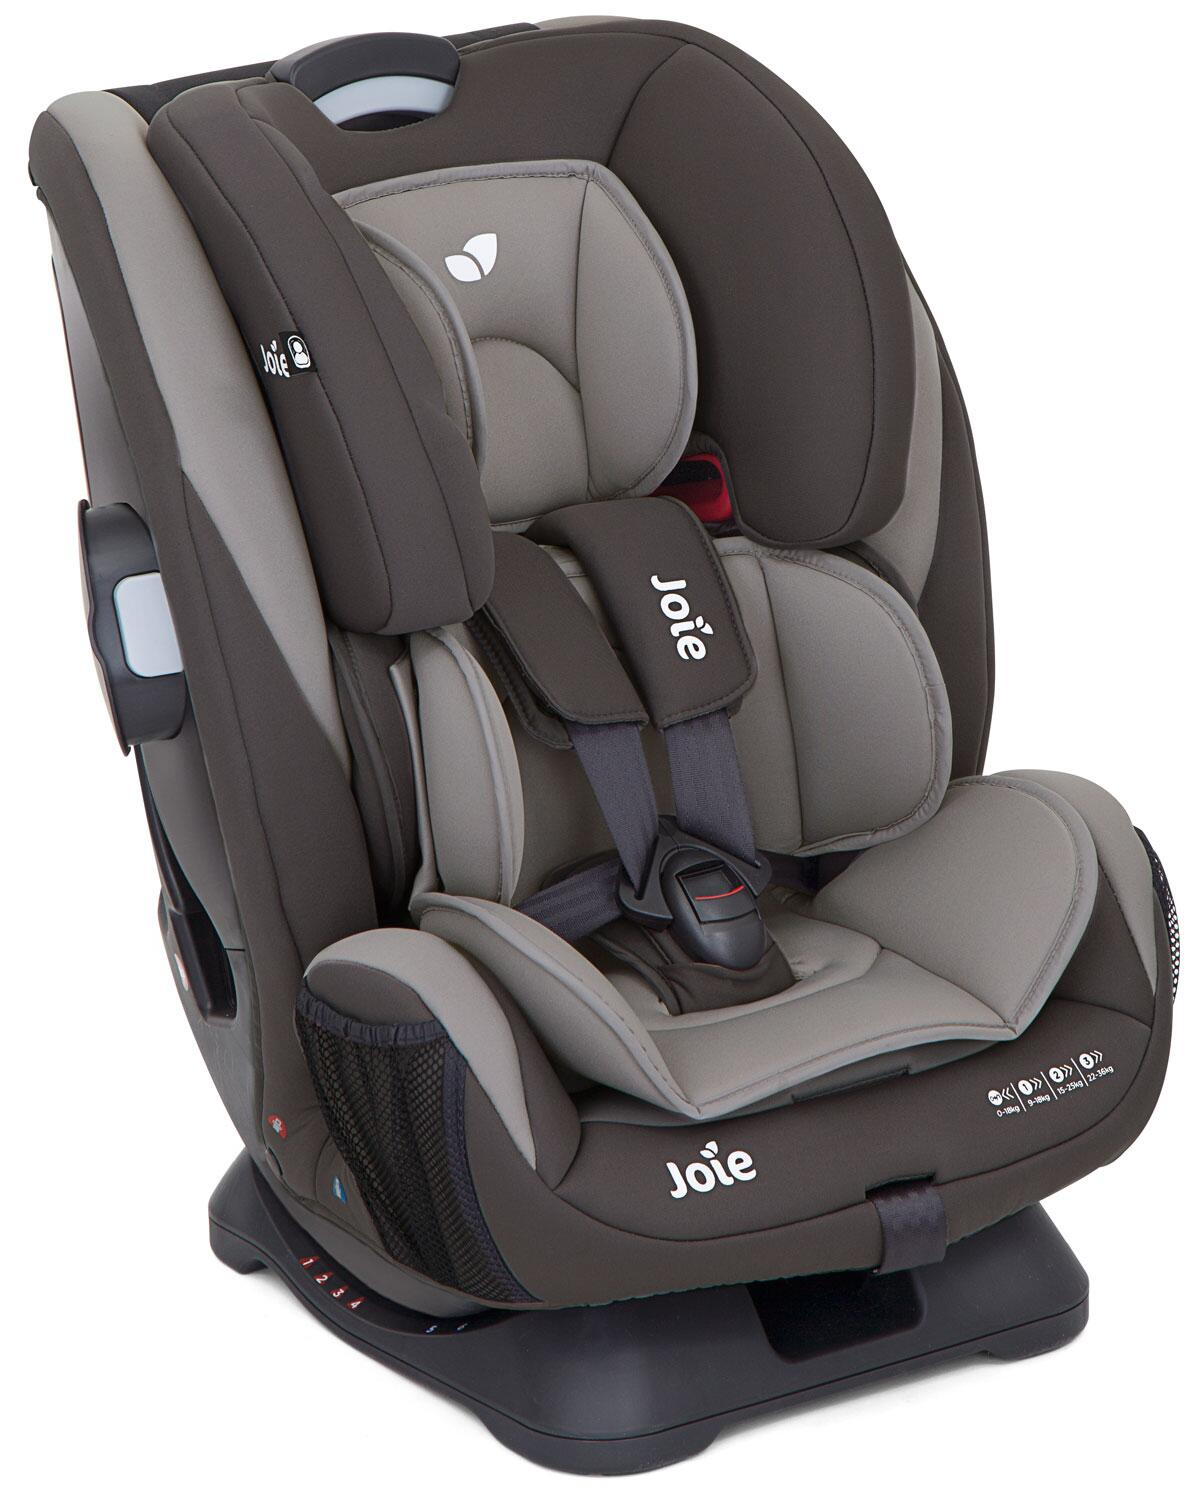 Maxi Cosi Car Seat Stroller Joie Every Stage Car Seat Gr 1 2 3 Algateckids